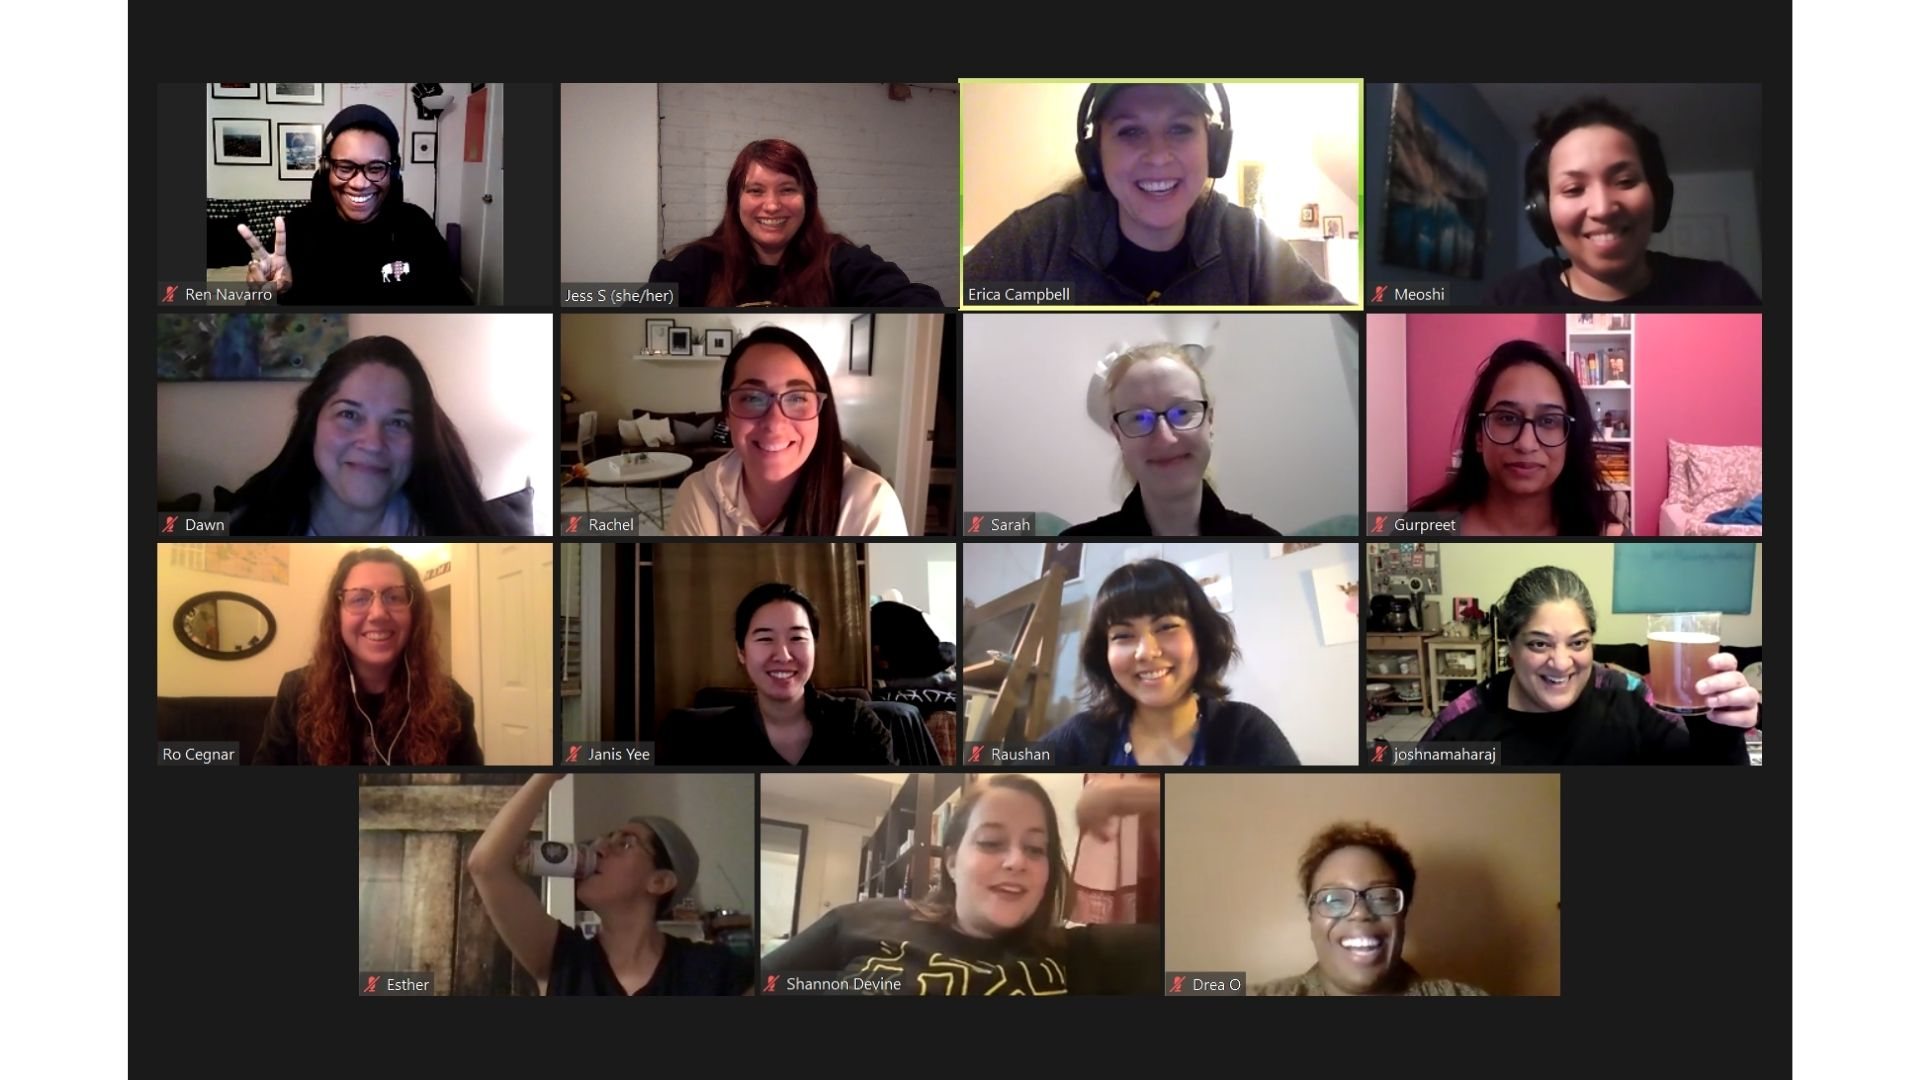 A screenshot of the inclusivity committee meeting over Zoom. Fifteen women are featured in little squares smiling at the camera.